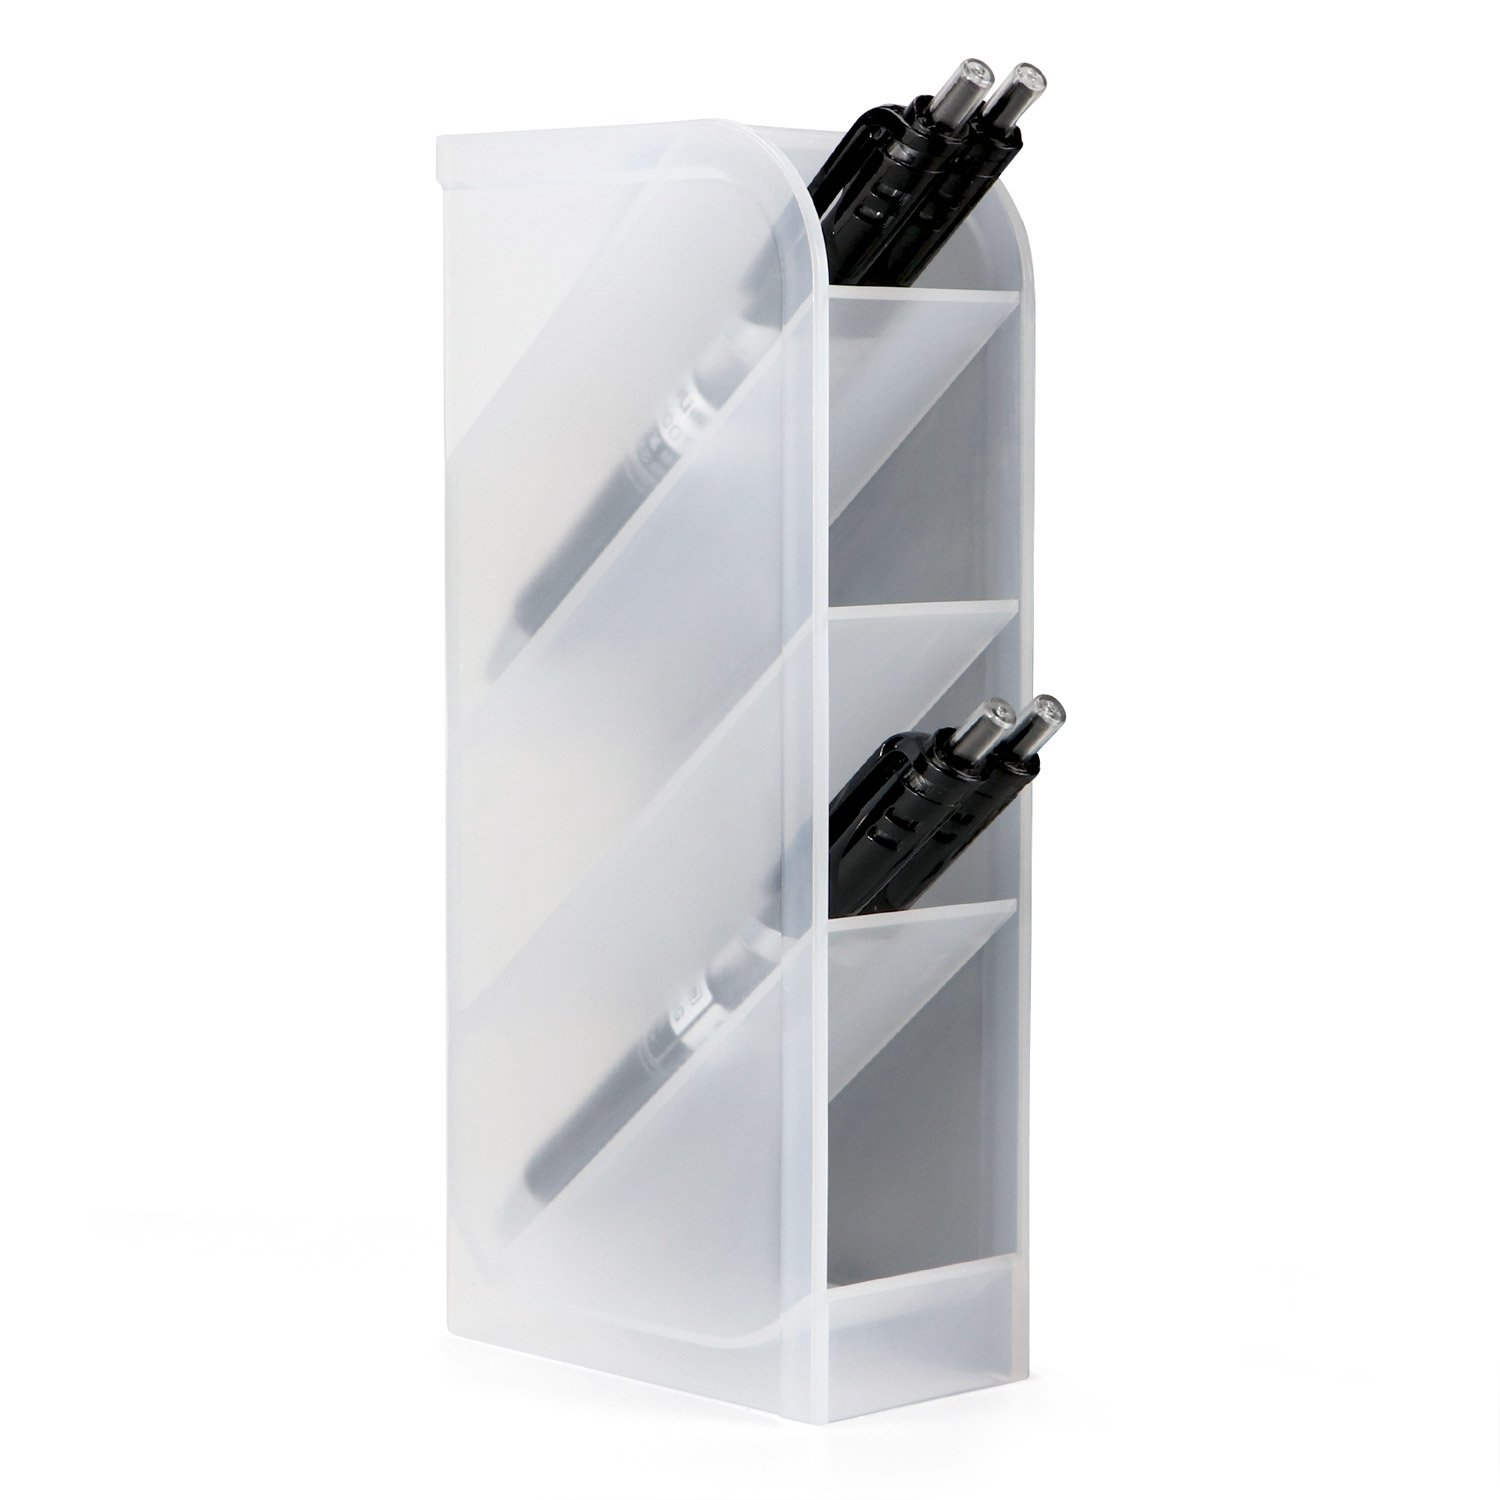 Desk Organizer- Pen Caddy Organizer Storage for Office, School, Home Supplies, Pen Storage Holder (White) HULISEN 0729